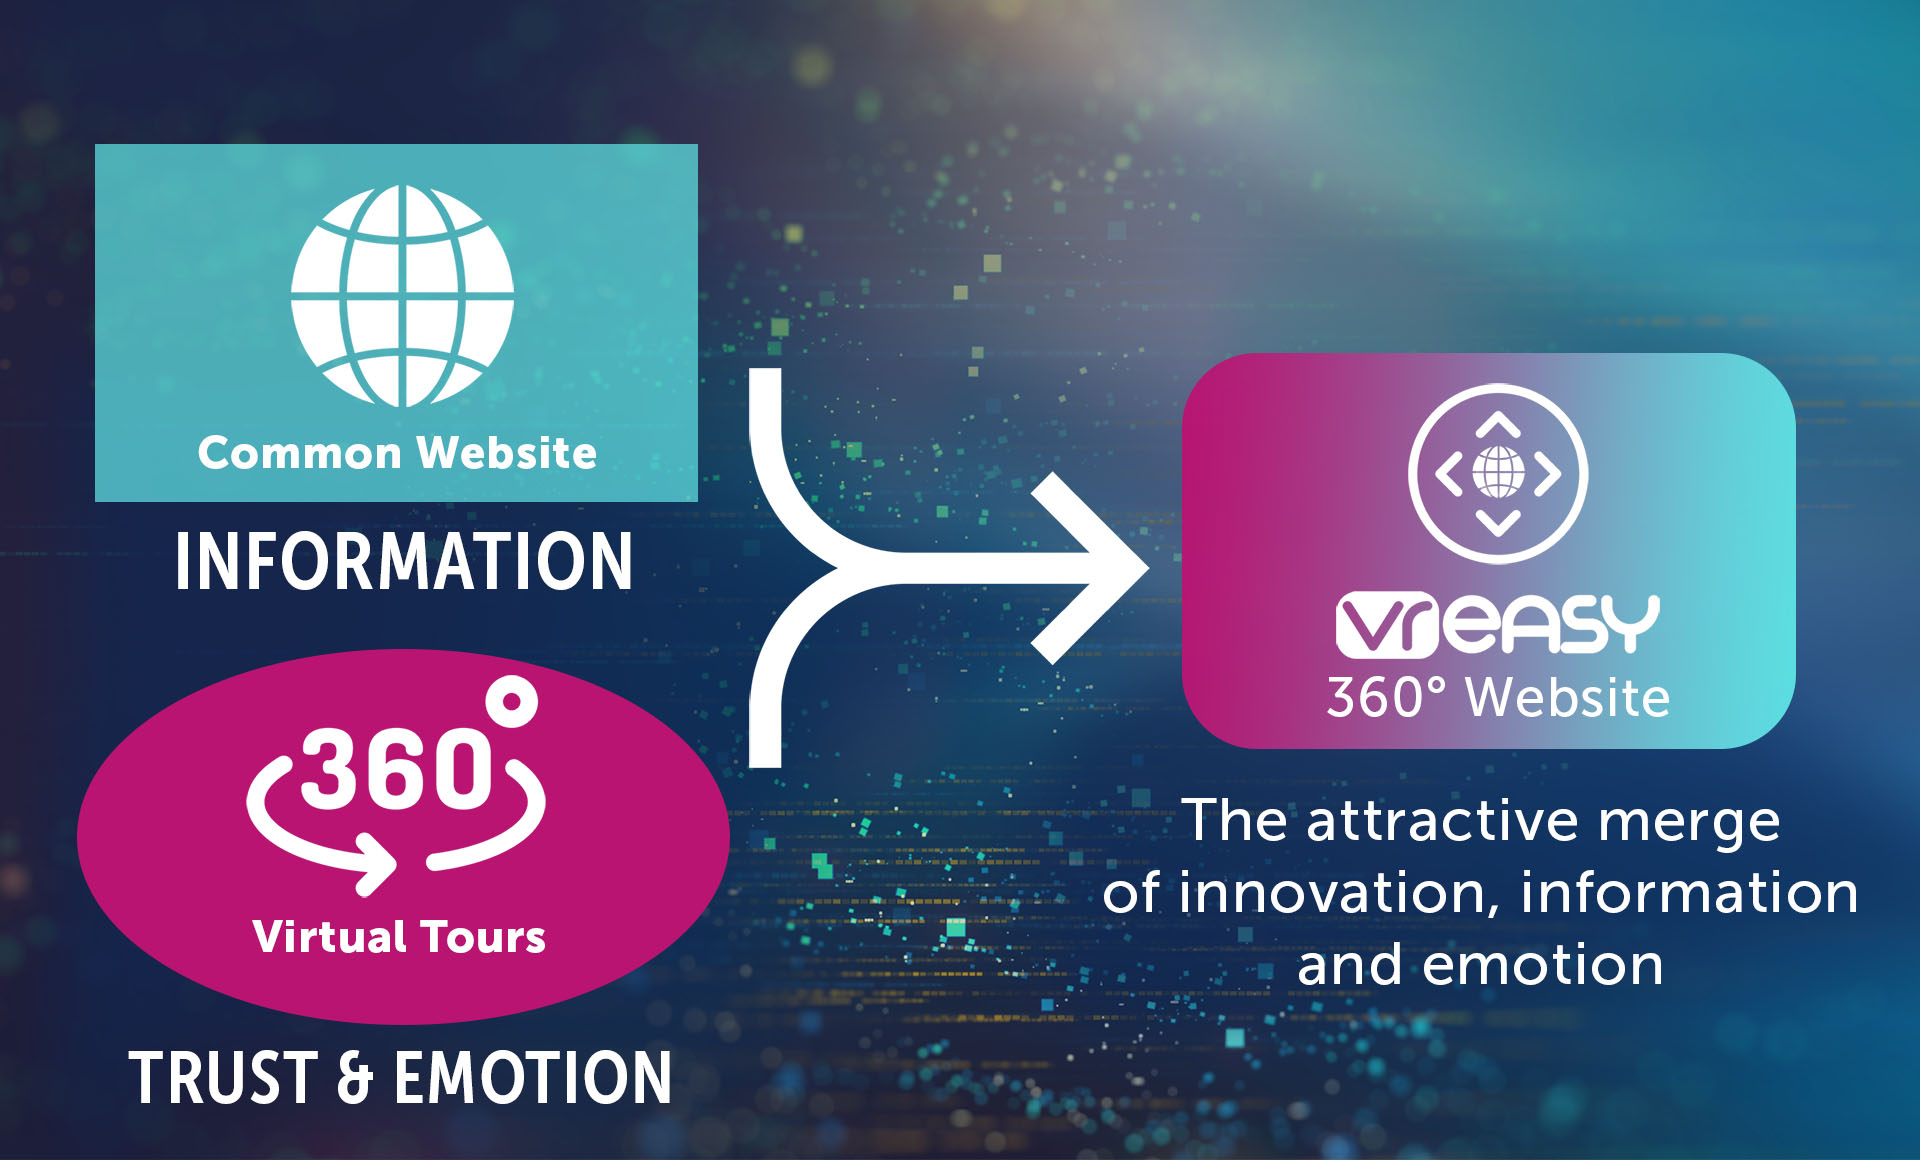 360-websites-from-vr-easy-merge-of-common-website-with-virtual-tours